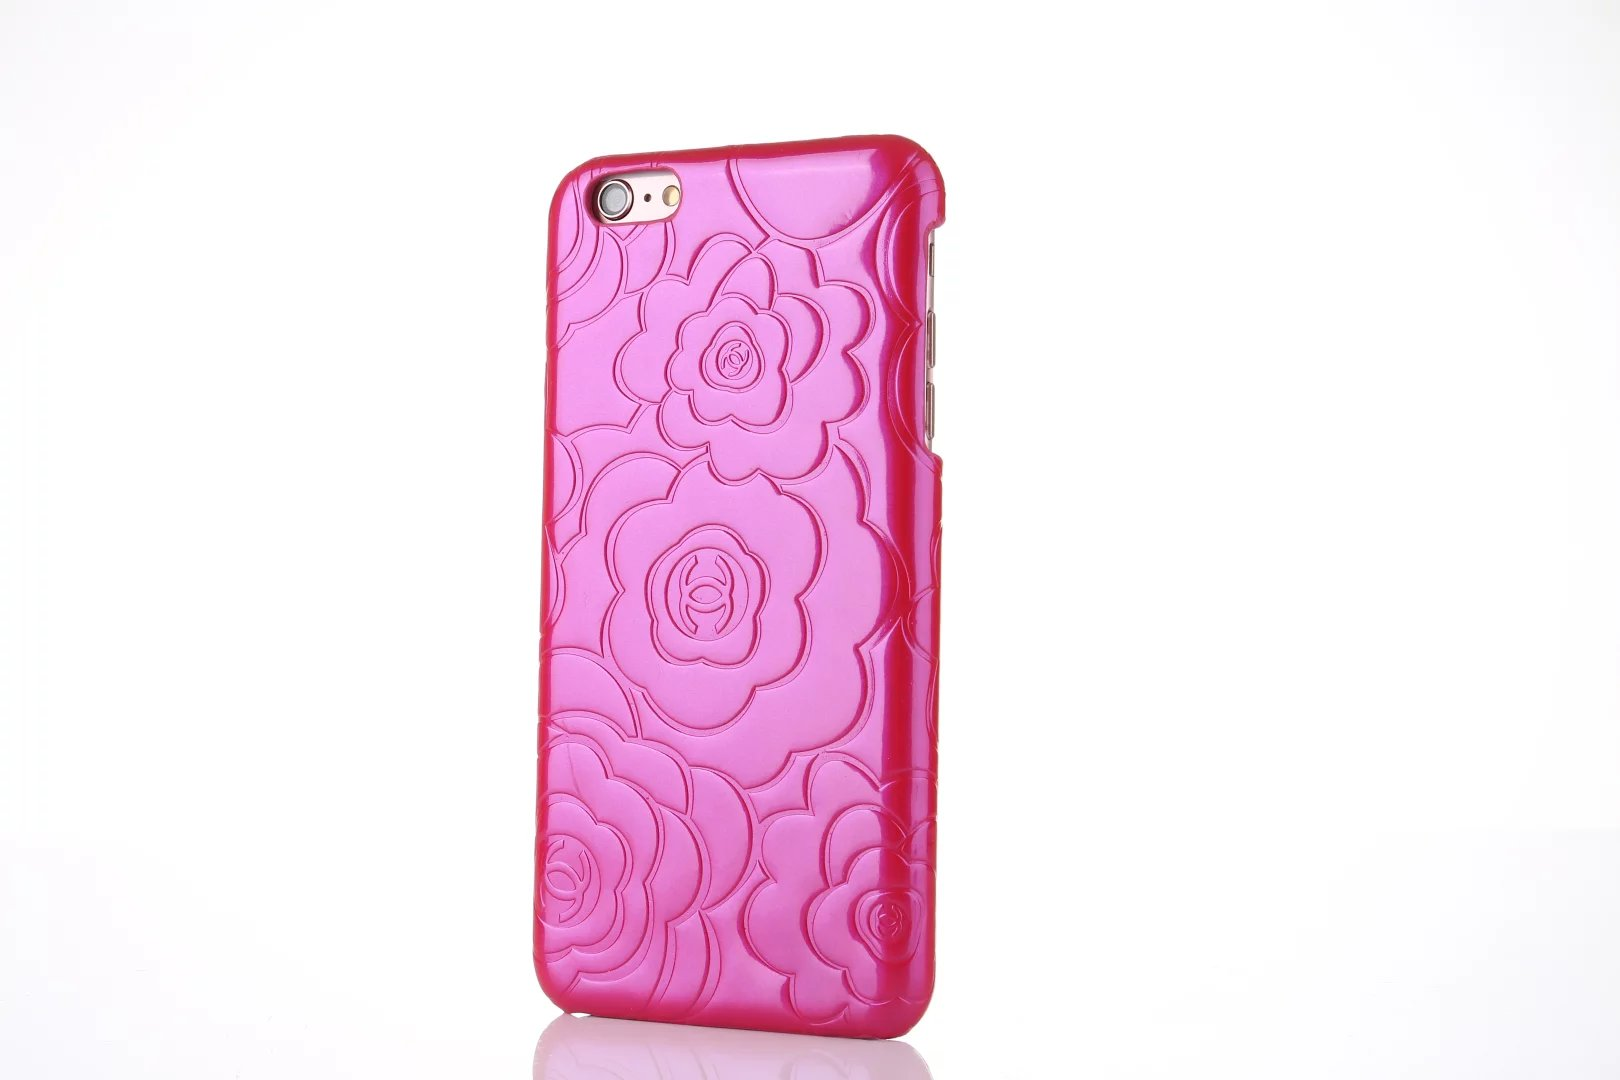 best iphone 8 covers protective iphone 8 cases Chanel iphone 8 case cell phones covers cases iphone 8 case with screen protector best phone cases iphone 8 cheap designer phone cases design your iphone 8 case iphone case accessories